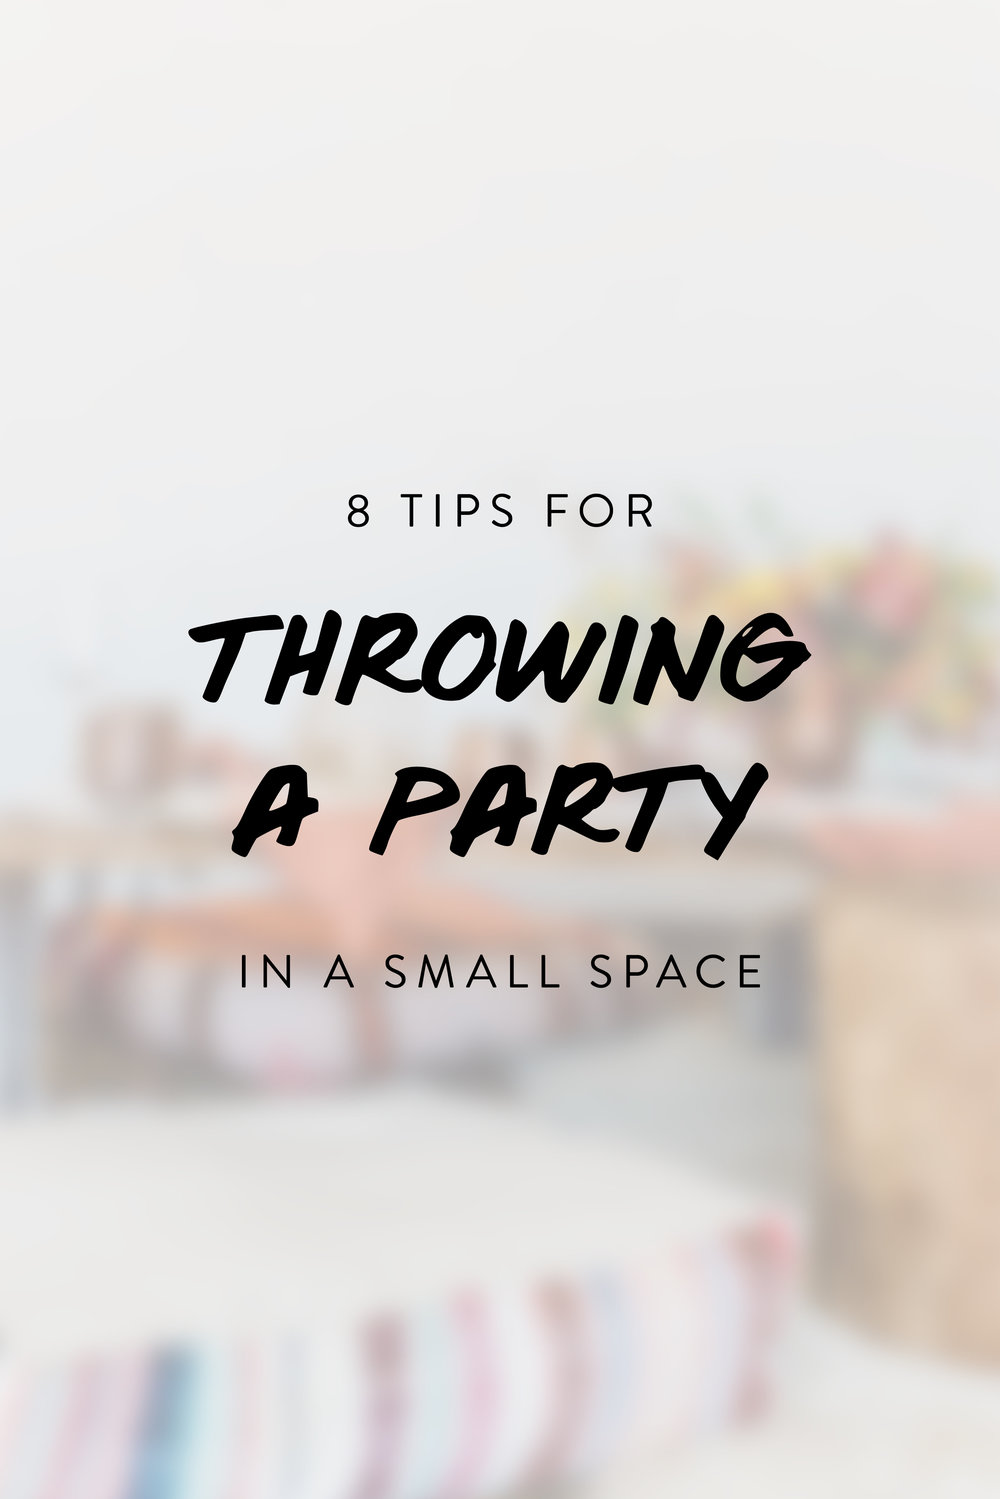 8 Tips for Throwing a Party in a Small Space